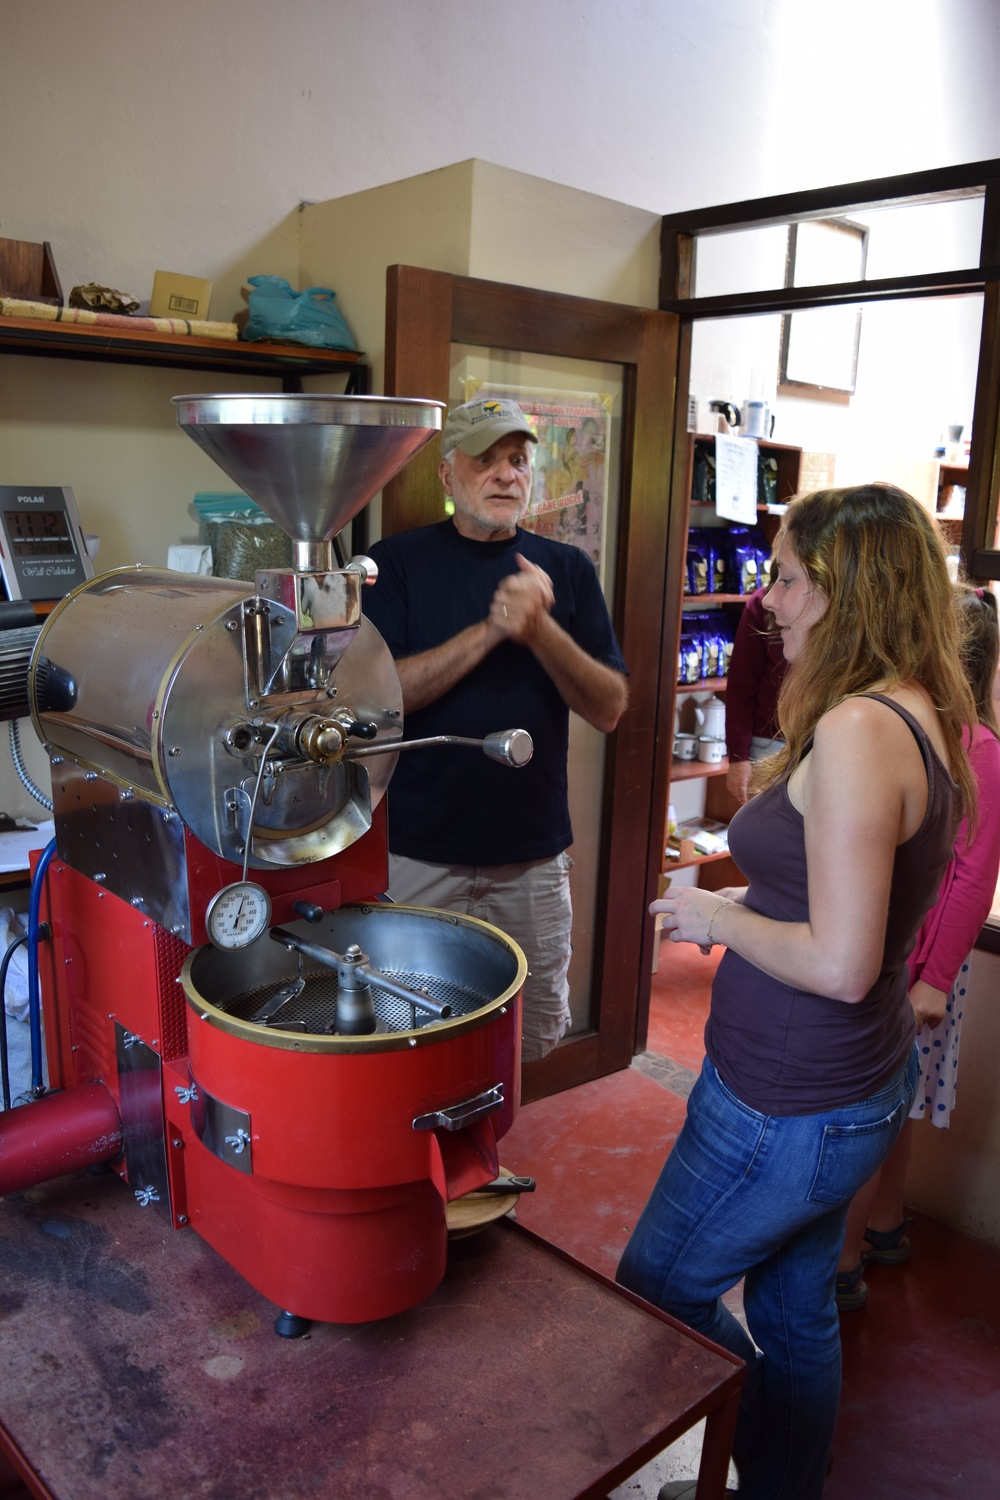 Learning how to roast coffee beans.